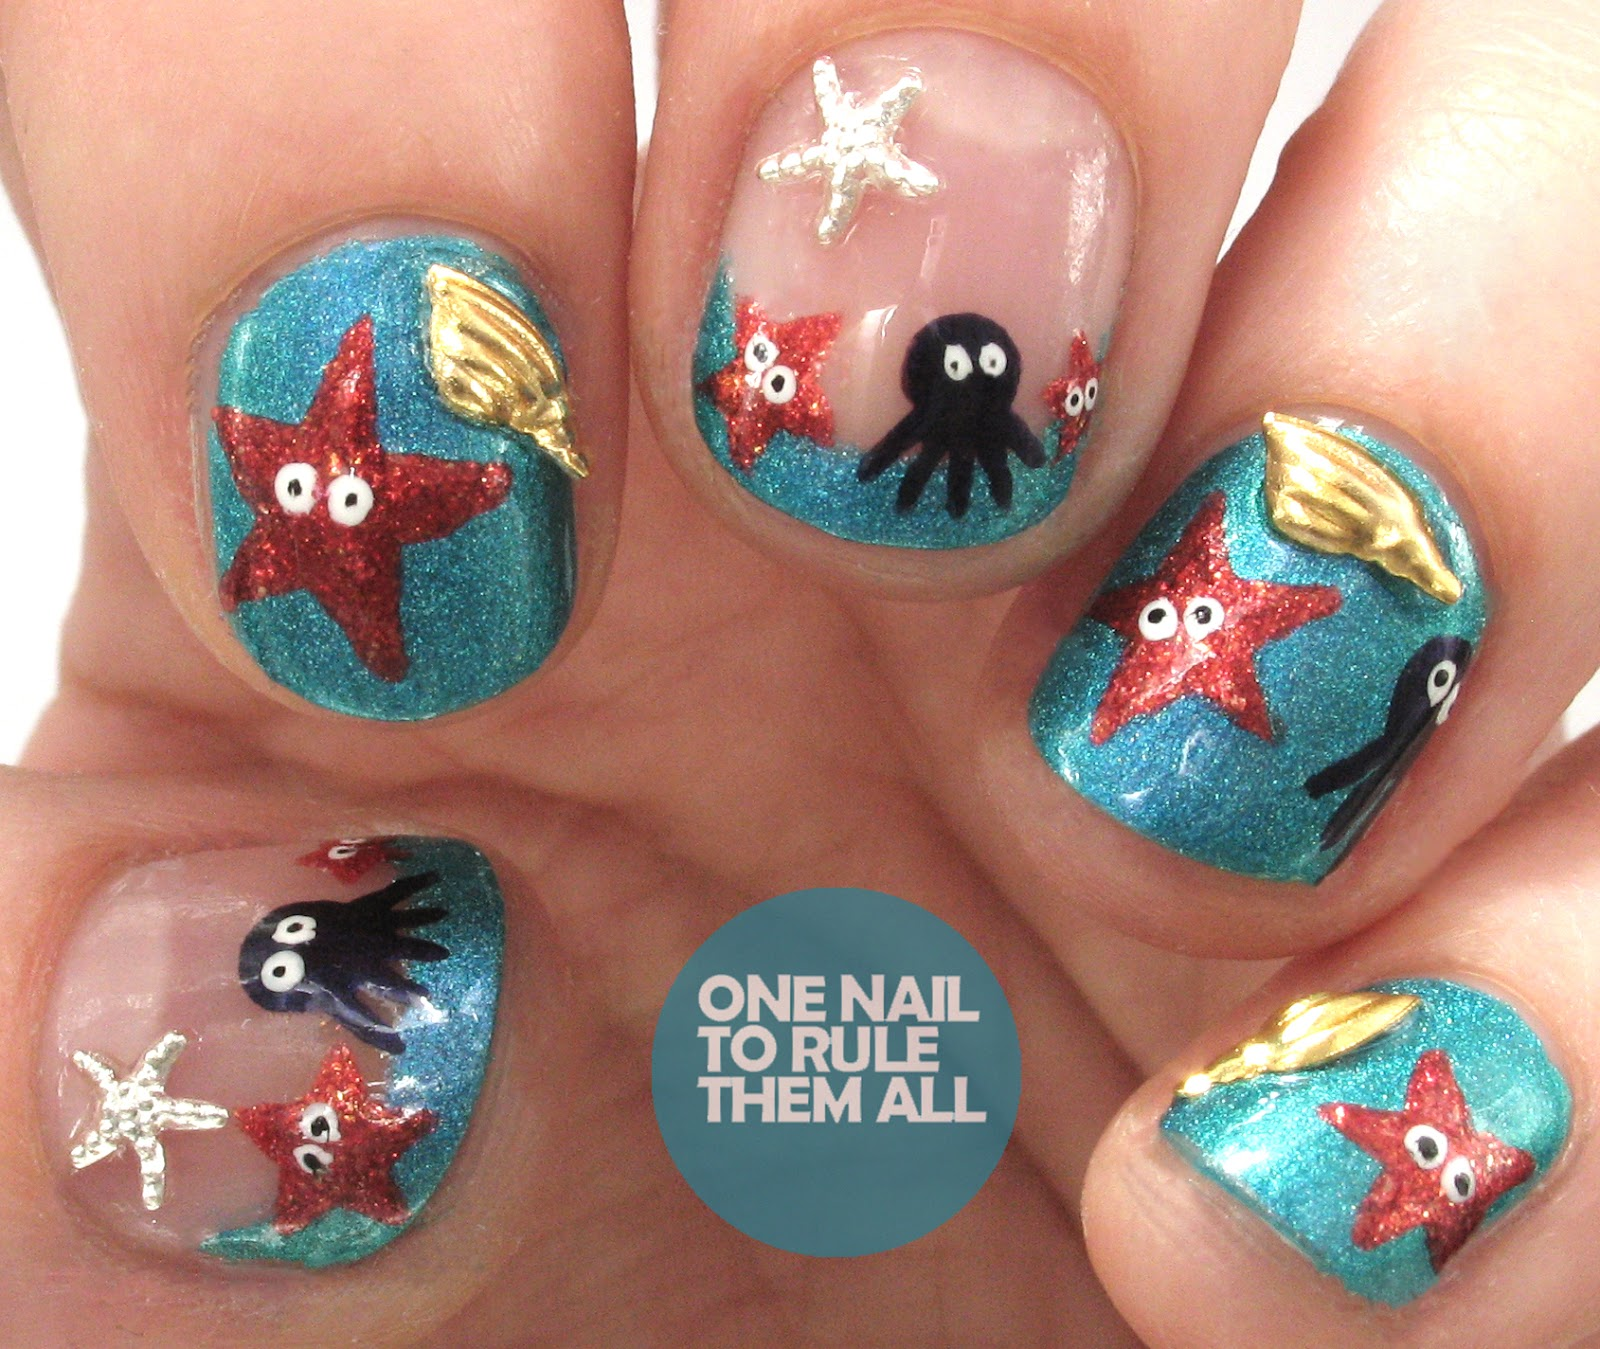 One Nail To Rule Them All: June Splash Meebox Review